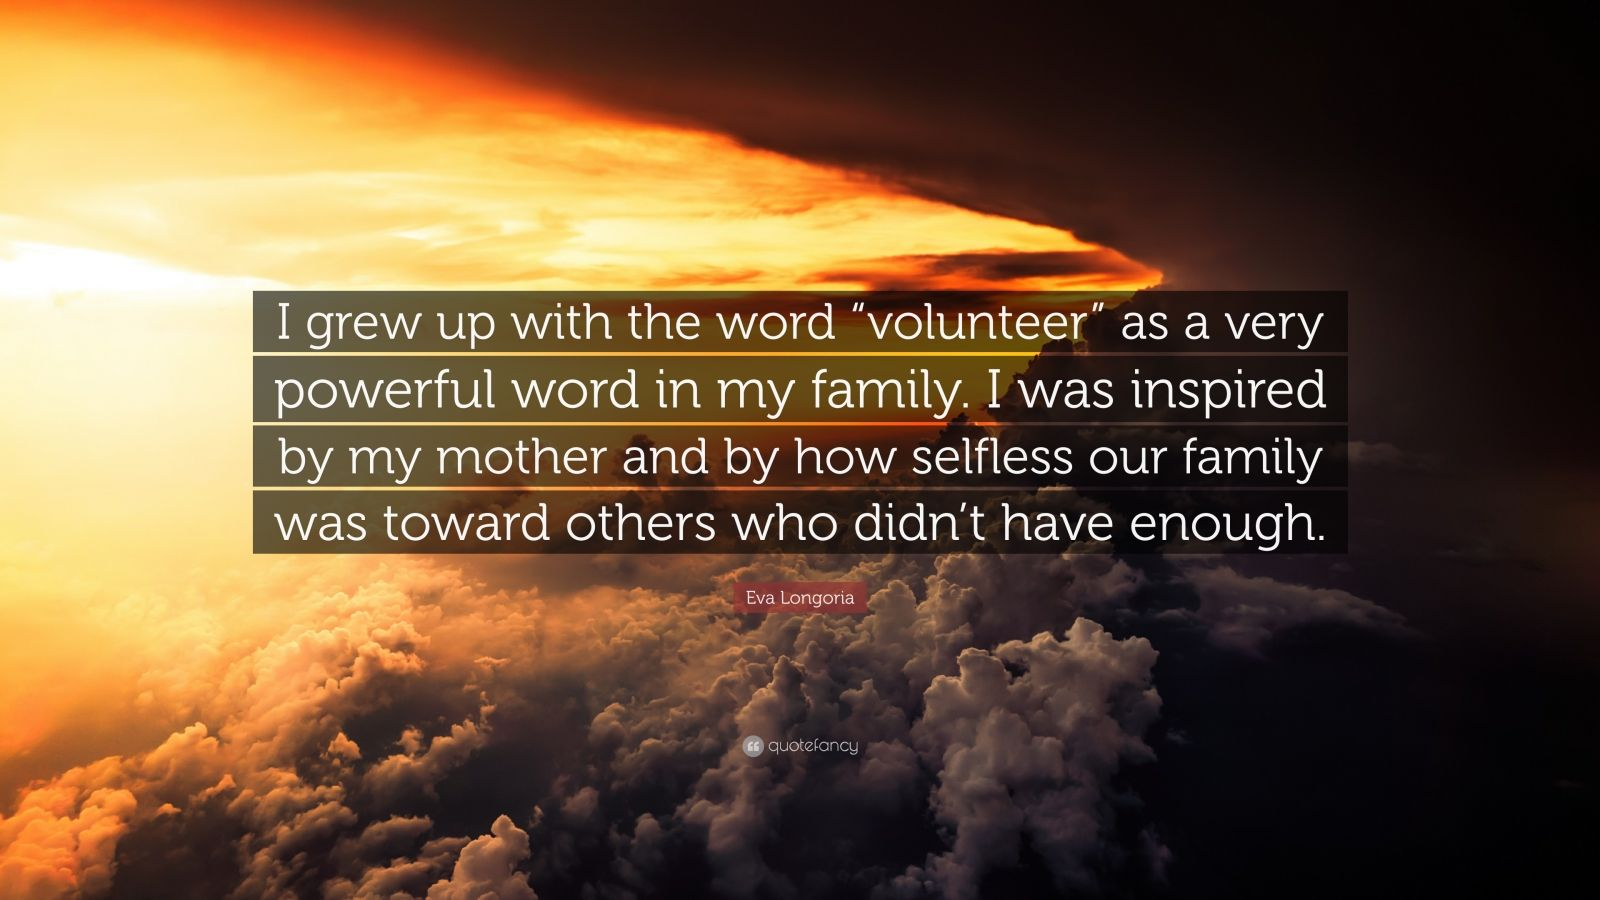 """Eva Longoria Quote: """"I grew up with the word """"volunteer"""" as a very powerful word in my family. I was inspired by my mother and by how selfless our family was toward others who didn't have enough."""""""